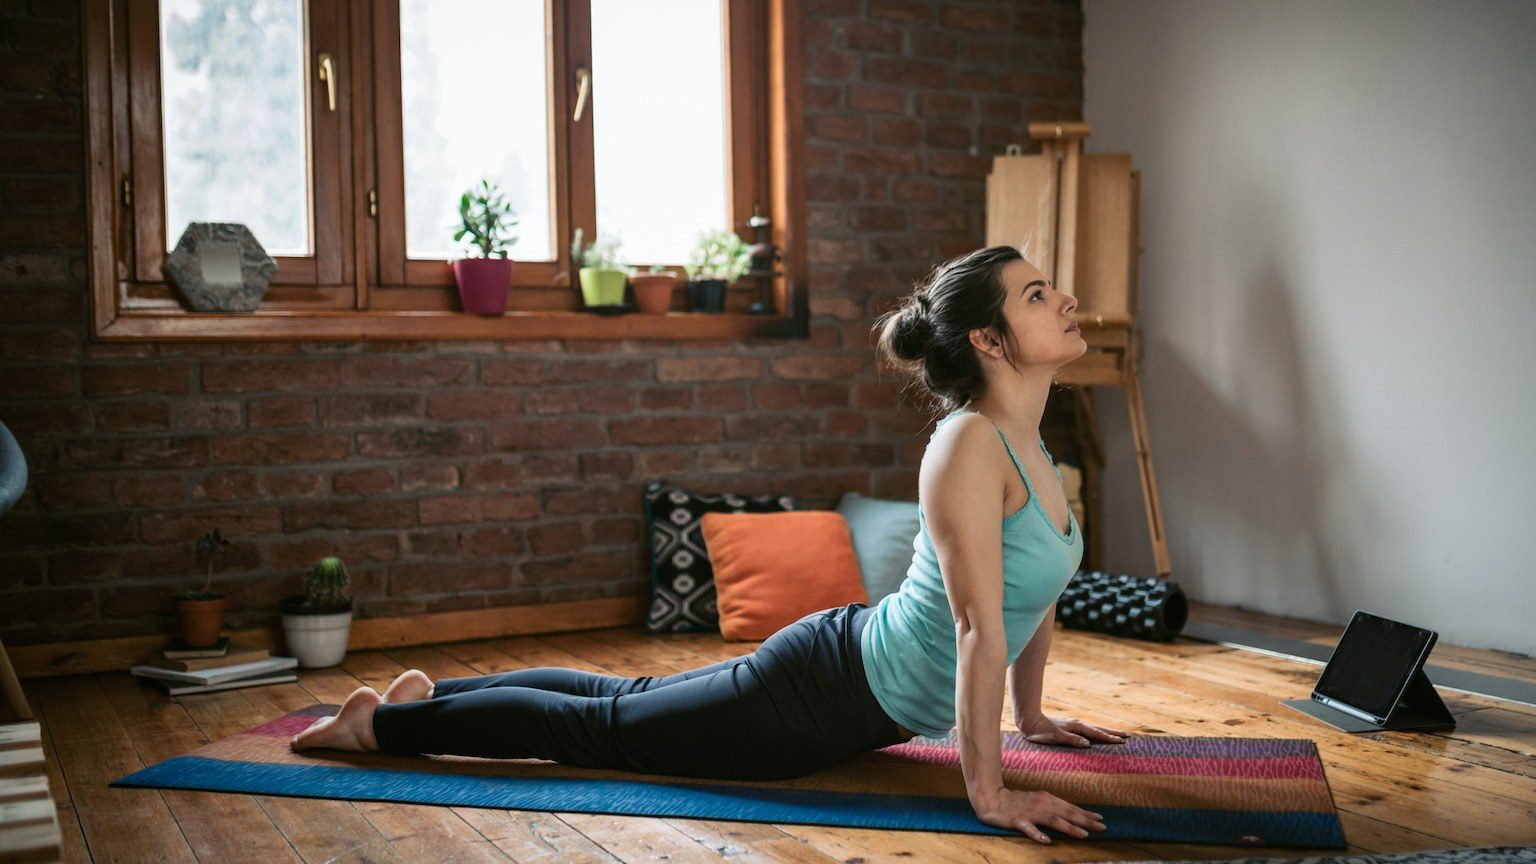 Lady stretching on pilates mat at home.